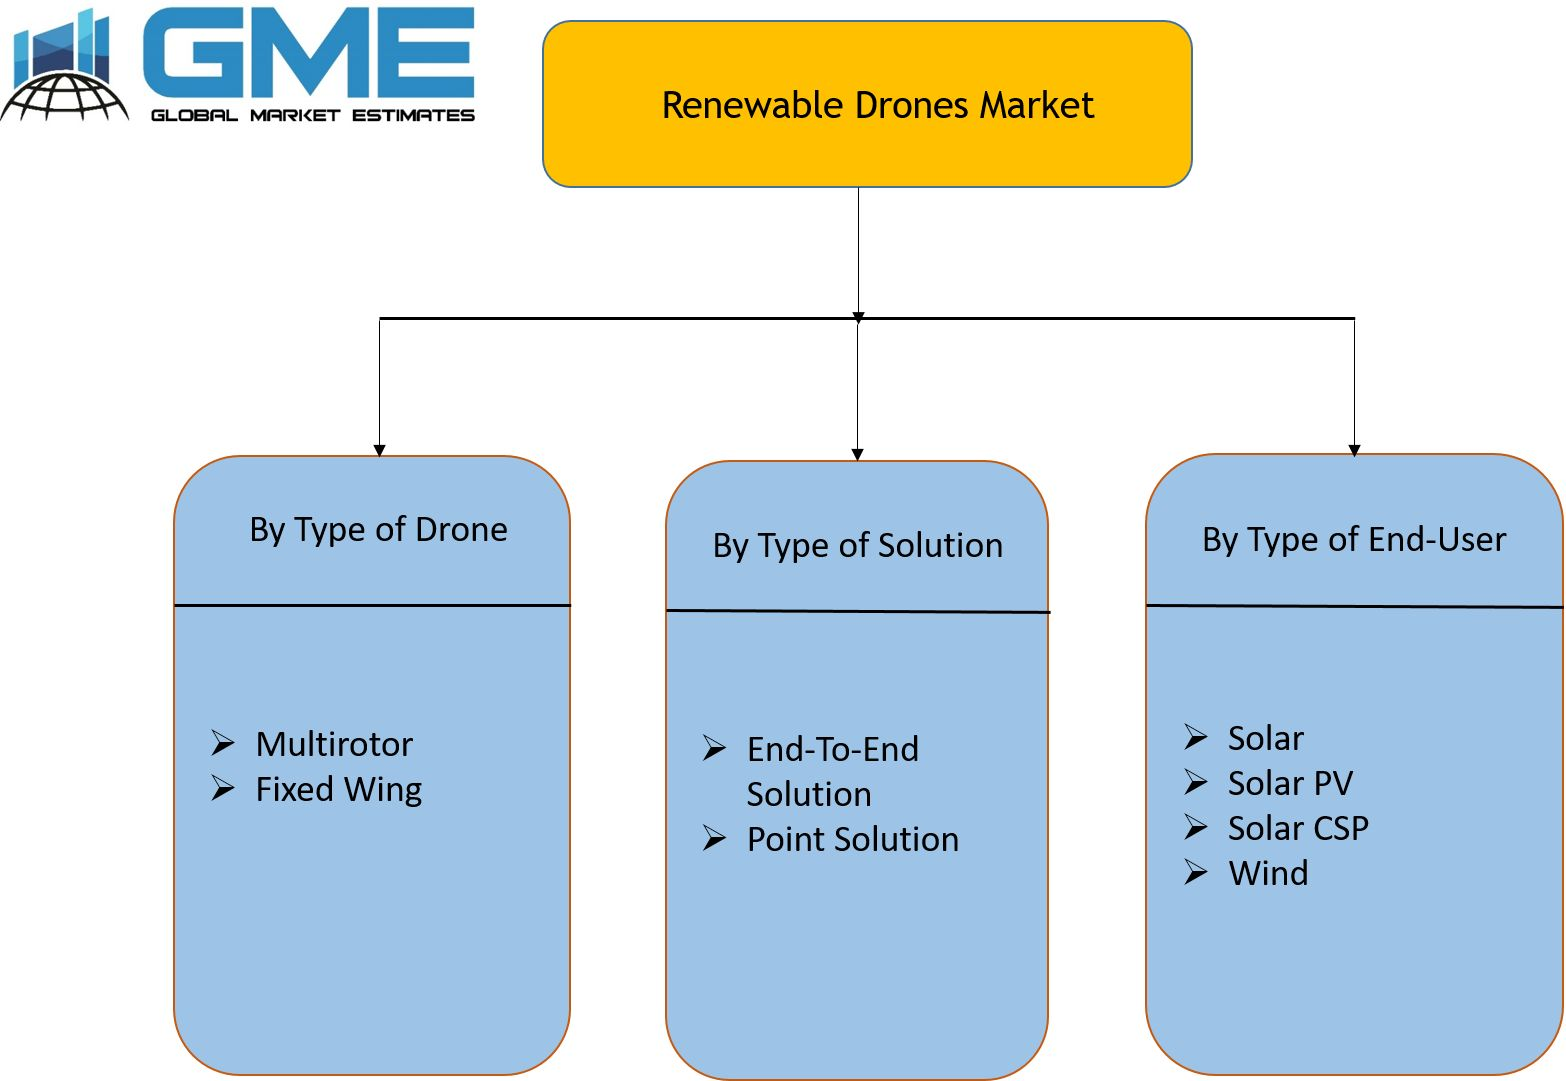 Renewable Drones Market Segmentation